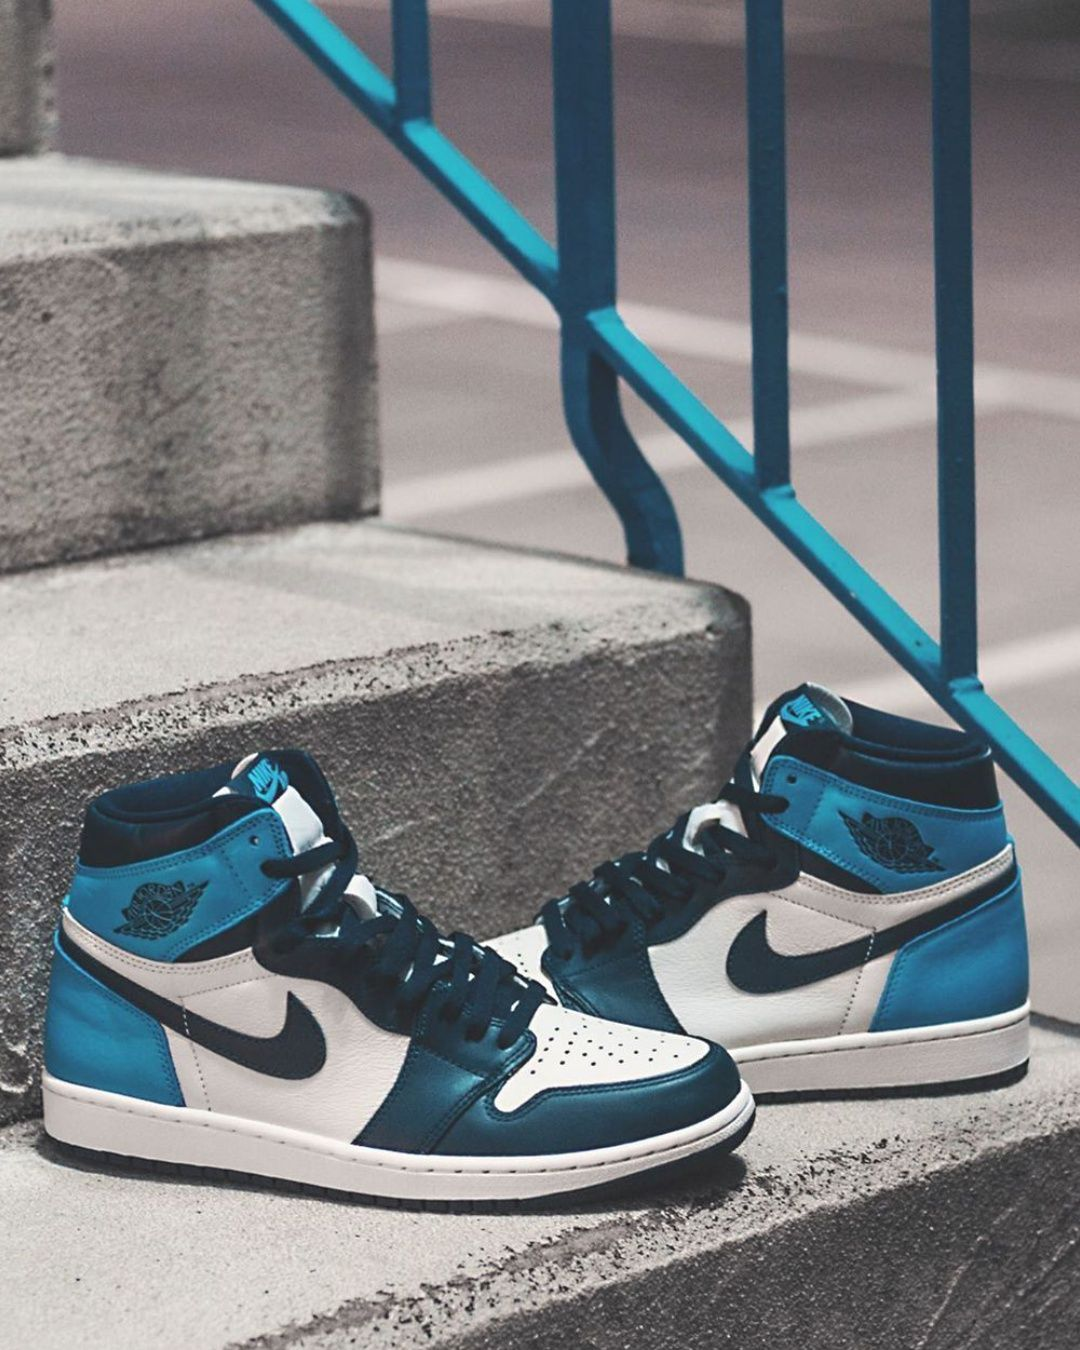 Jordan 1 Retro High Obsidian Unc 2020 Thanksgiving Outifts Trends Outfit Casual Shoes In 2020 Jordan Casual Shoes Nike Fashion Shoes Casual Shoe Sneakers